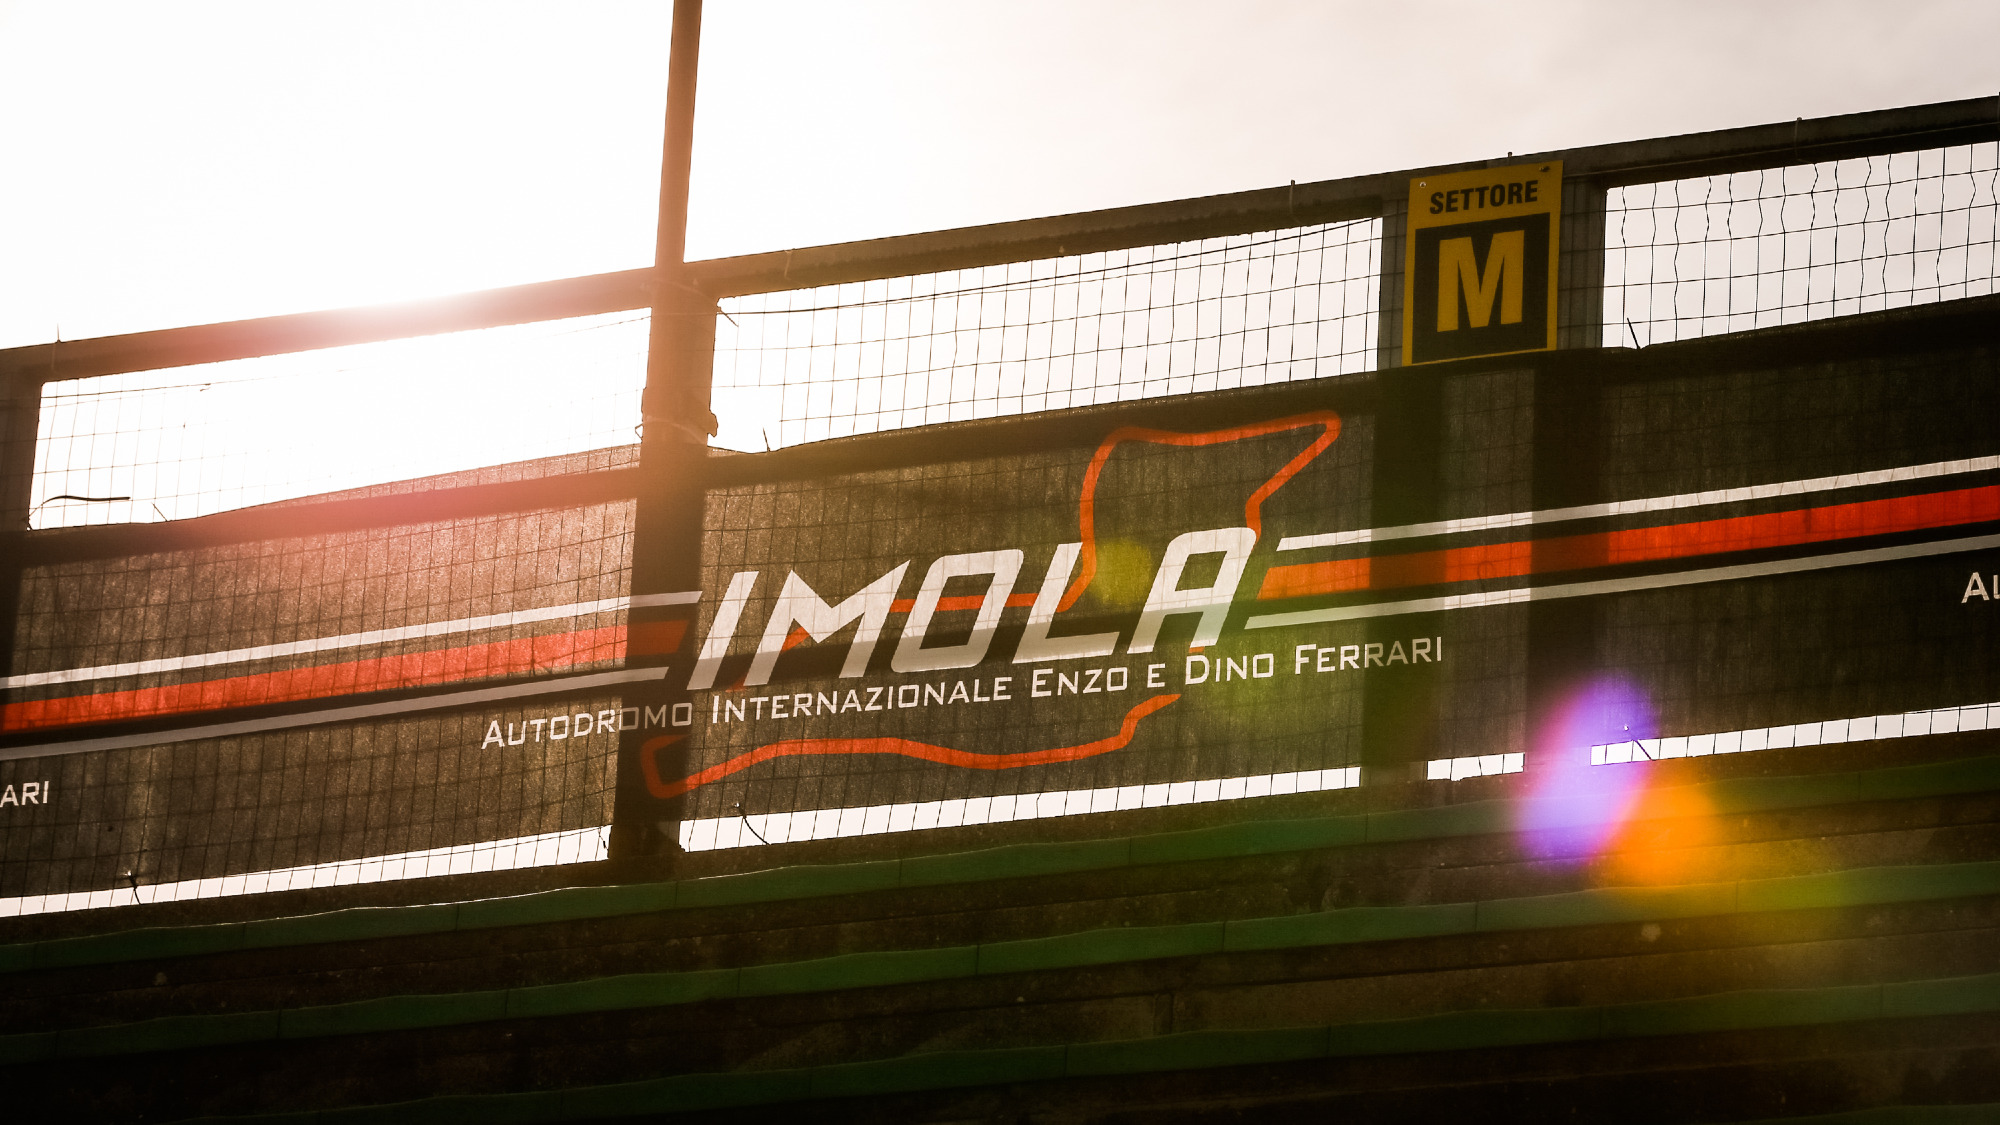 How to watch the 2021 Emilia Romagna Grand Prix at Imola: start times and TV channels